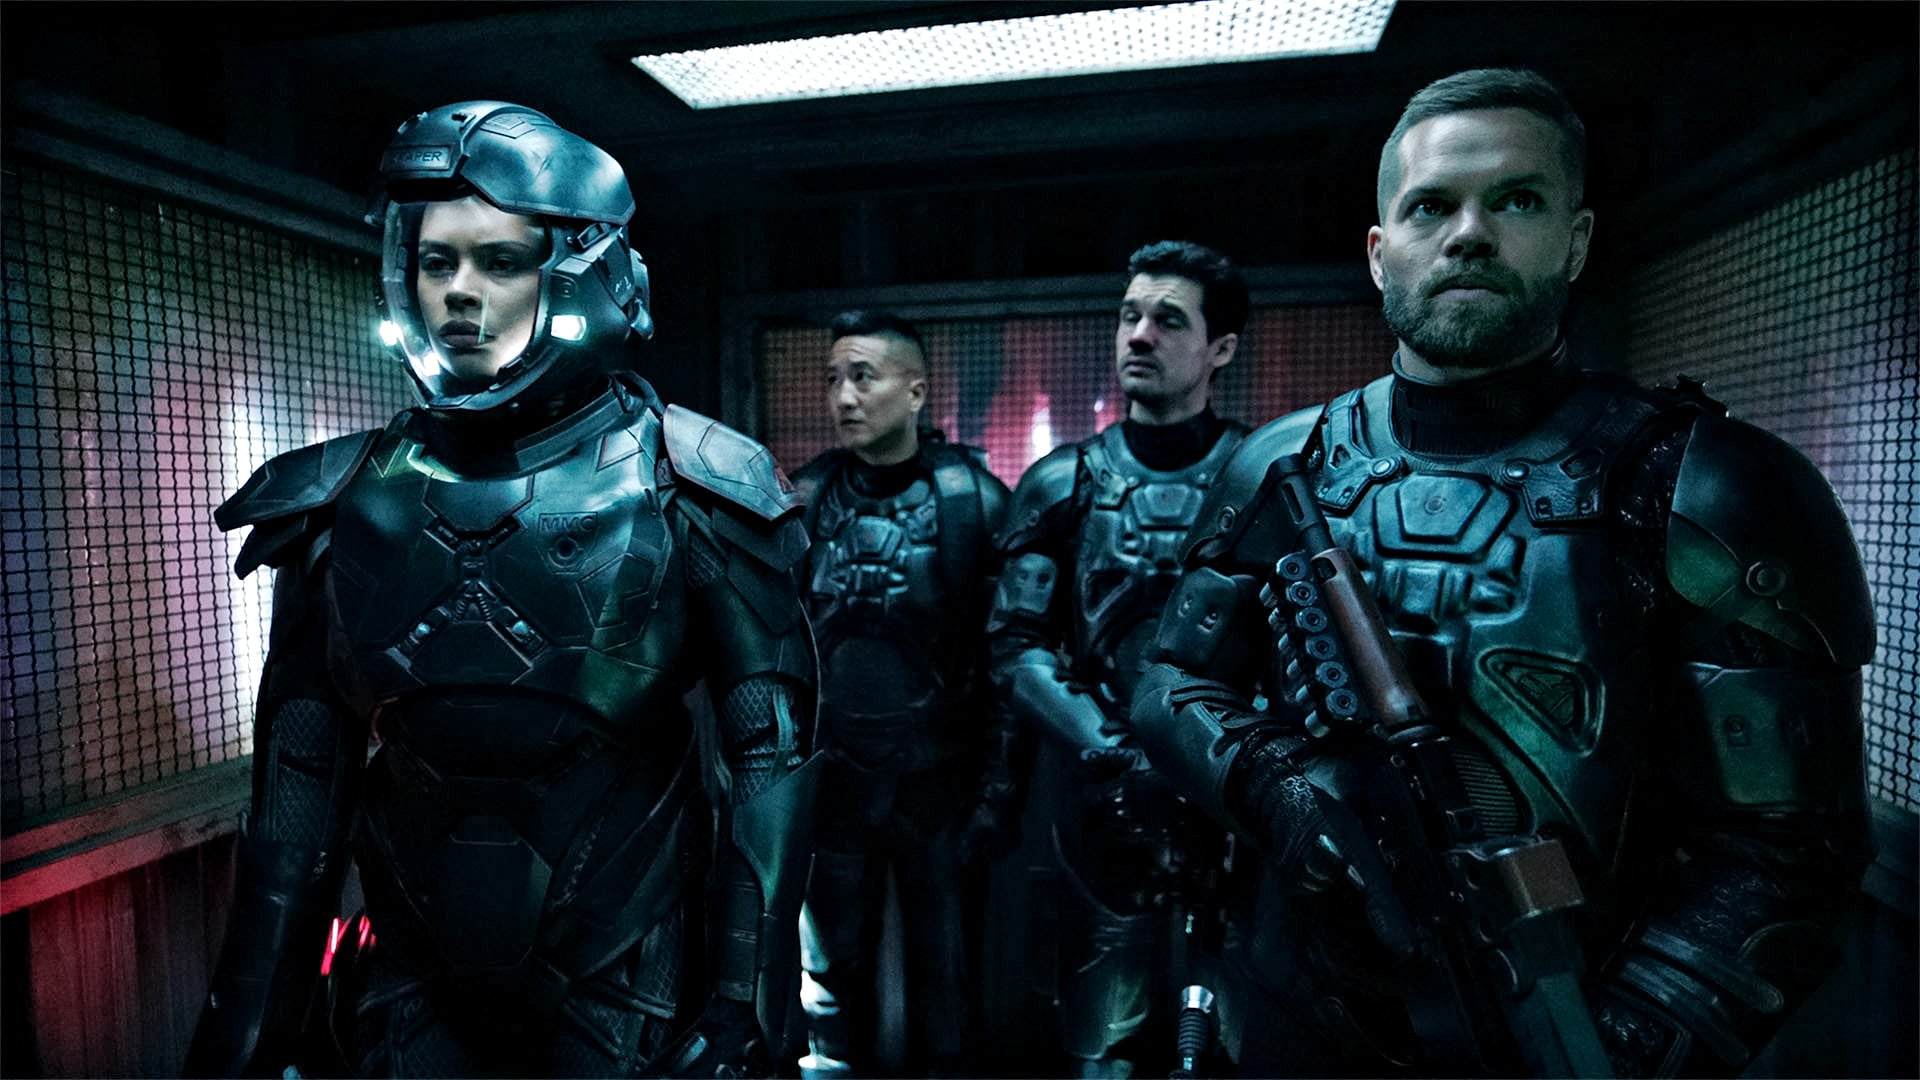 series the expanse